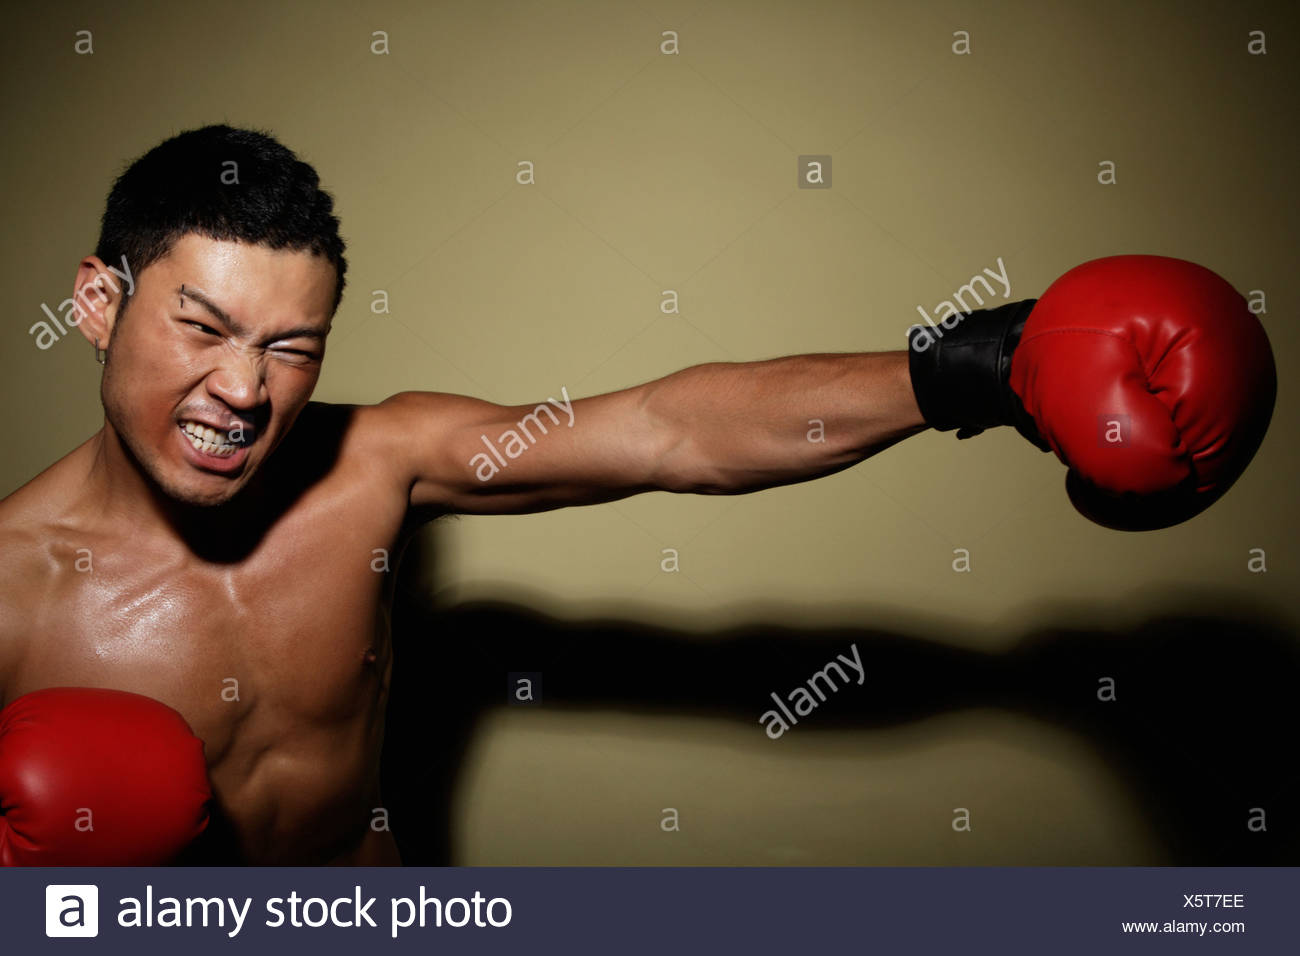 man punching the air with red boxing glove - Stock Image